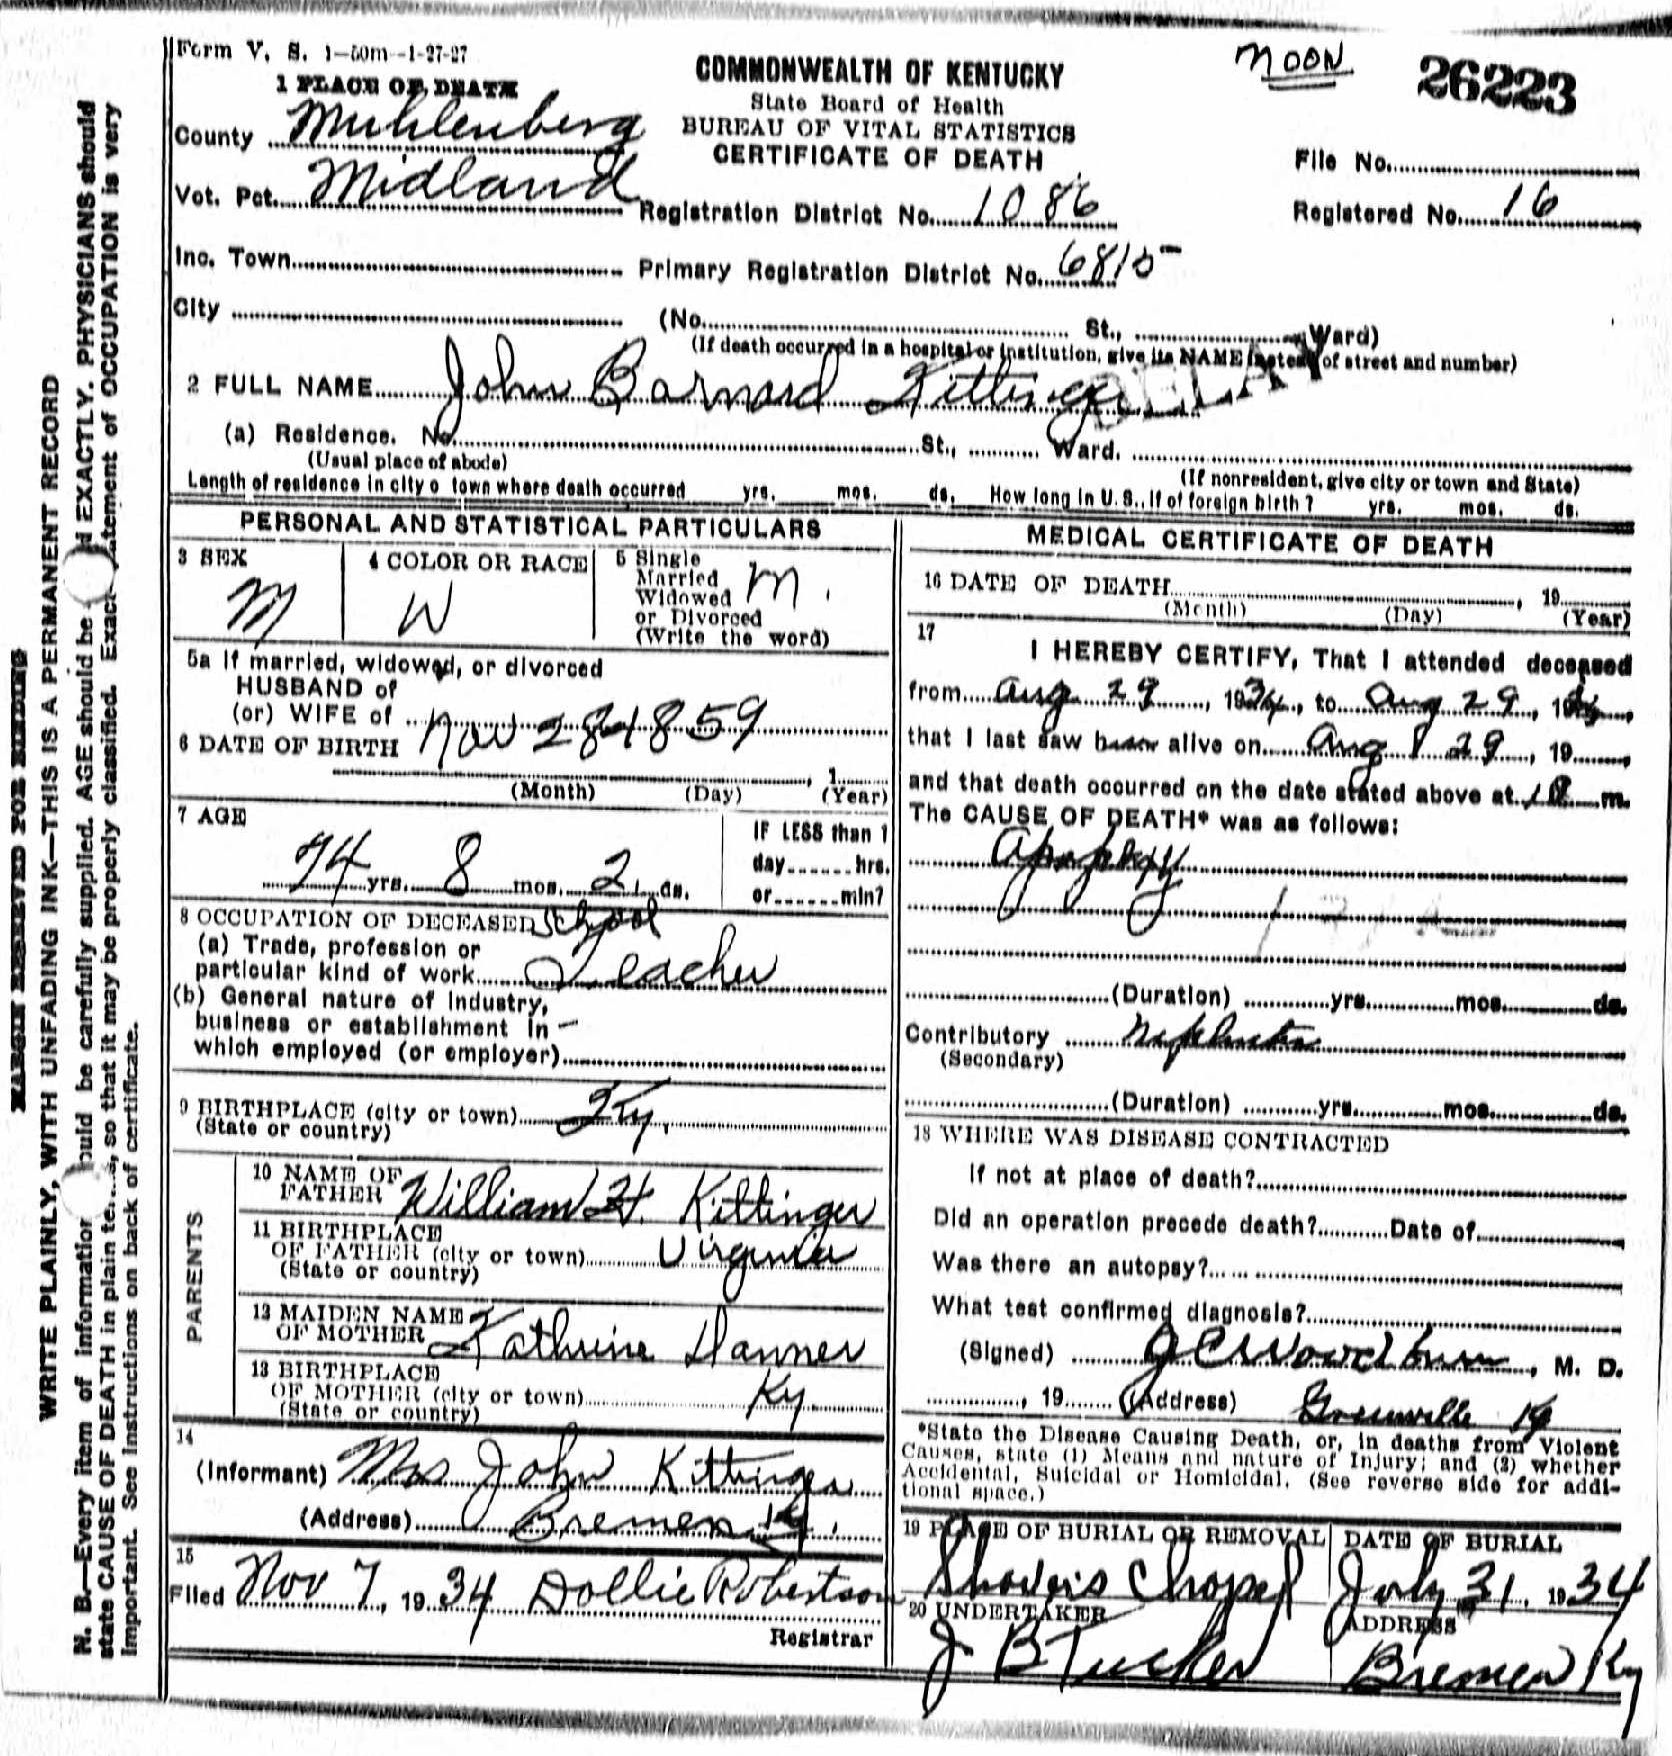 Beautiful images of king county birth certificate business cards certificates k from king county birth certificate image source kykinfolk aiddatafo Image collections